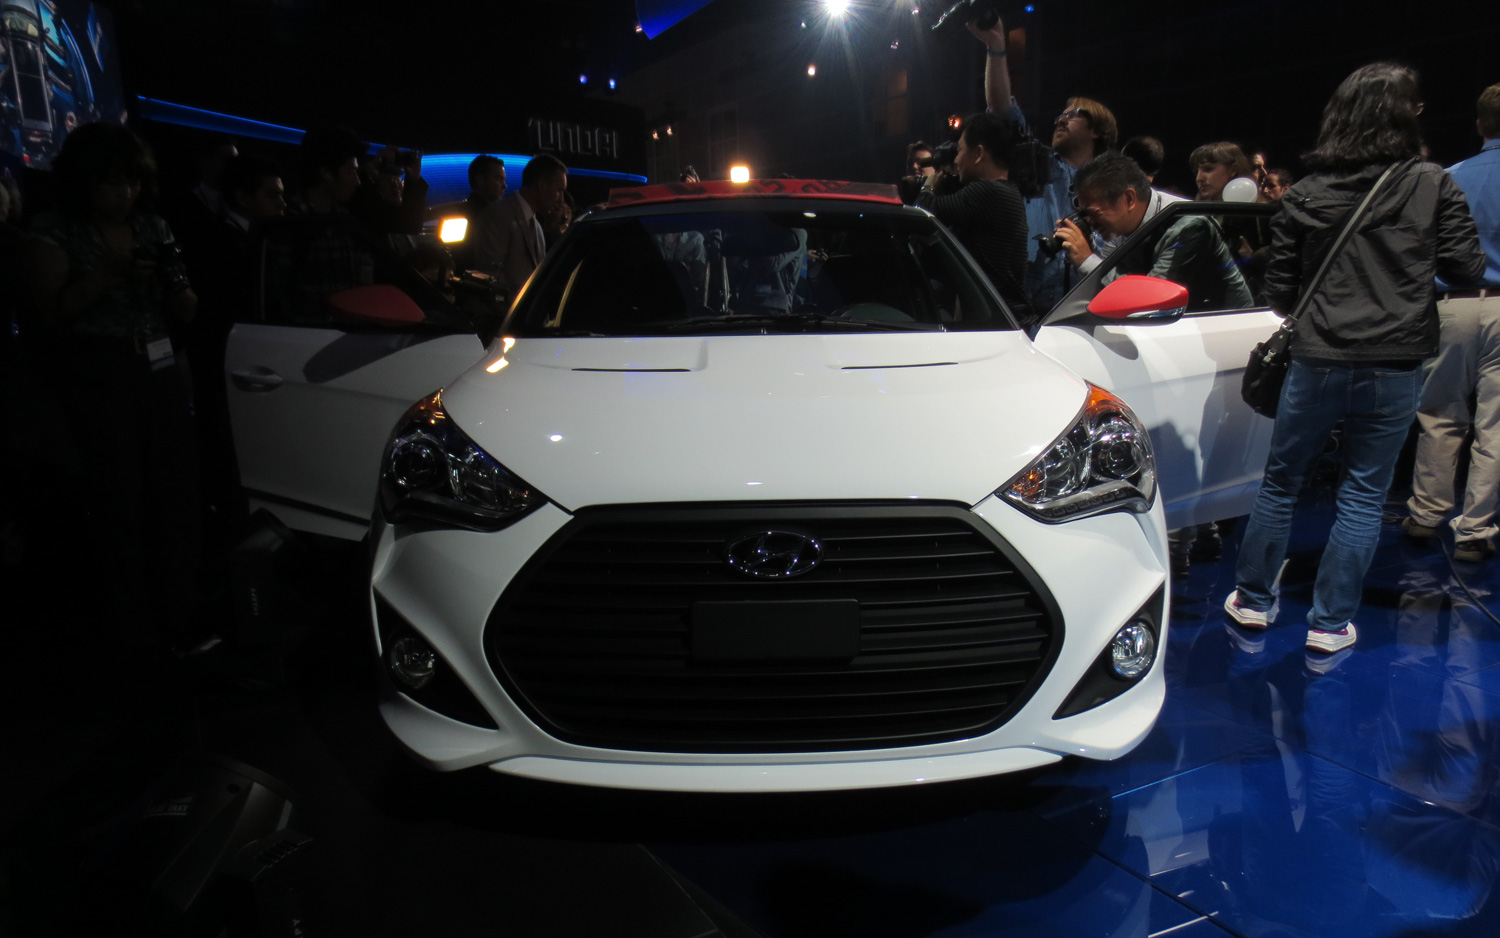 2019 Hyundai Veloster C3 Concept photo - 3